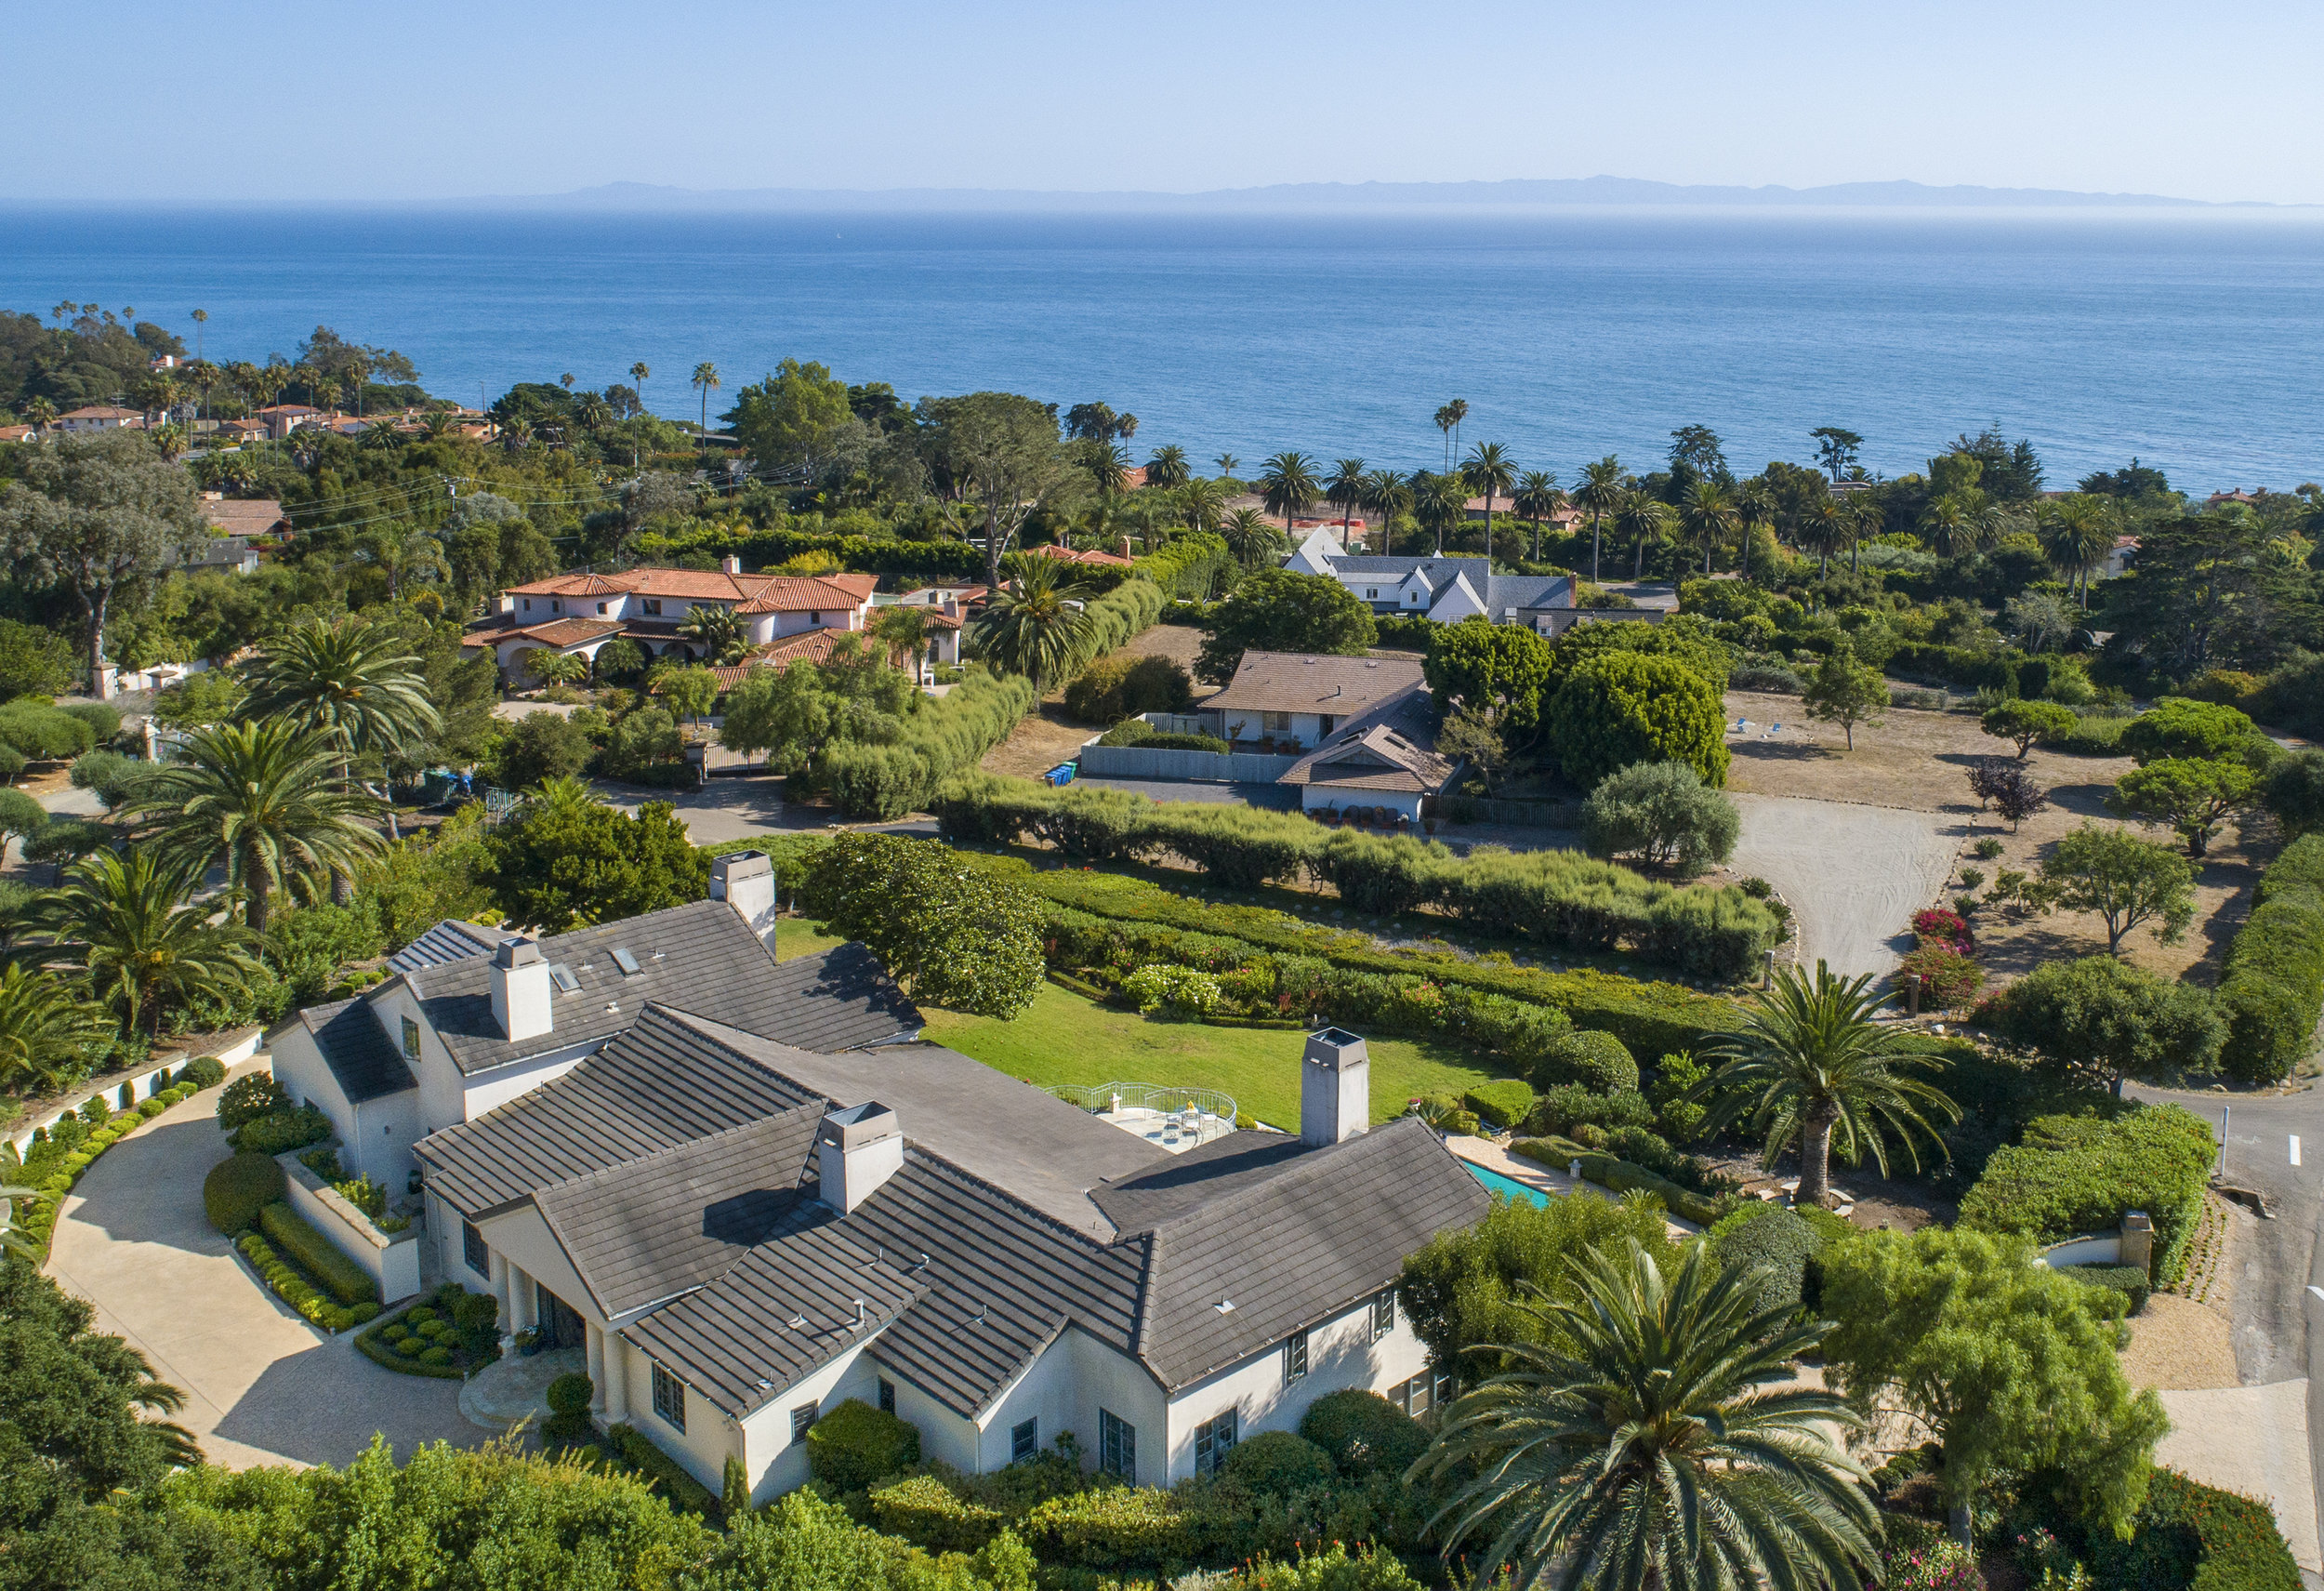 4050 Mariposa Drive Hope Ranch Riskin Partners Estate Group Village Properties  5 Bd / 5 full ba     5,514 sq ft approx.     1 acre approx.